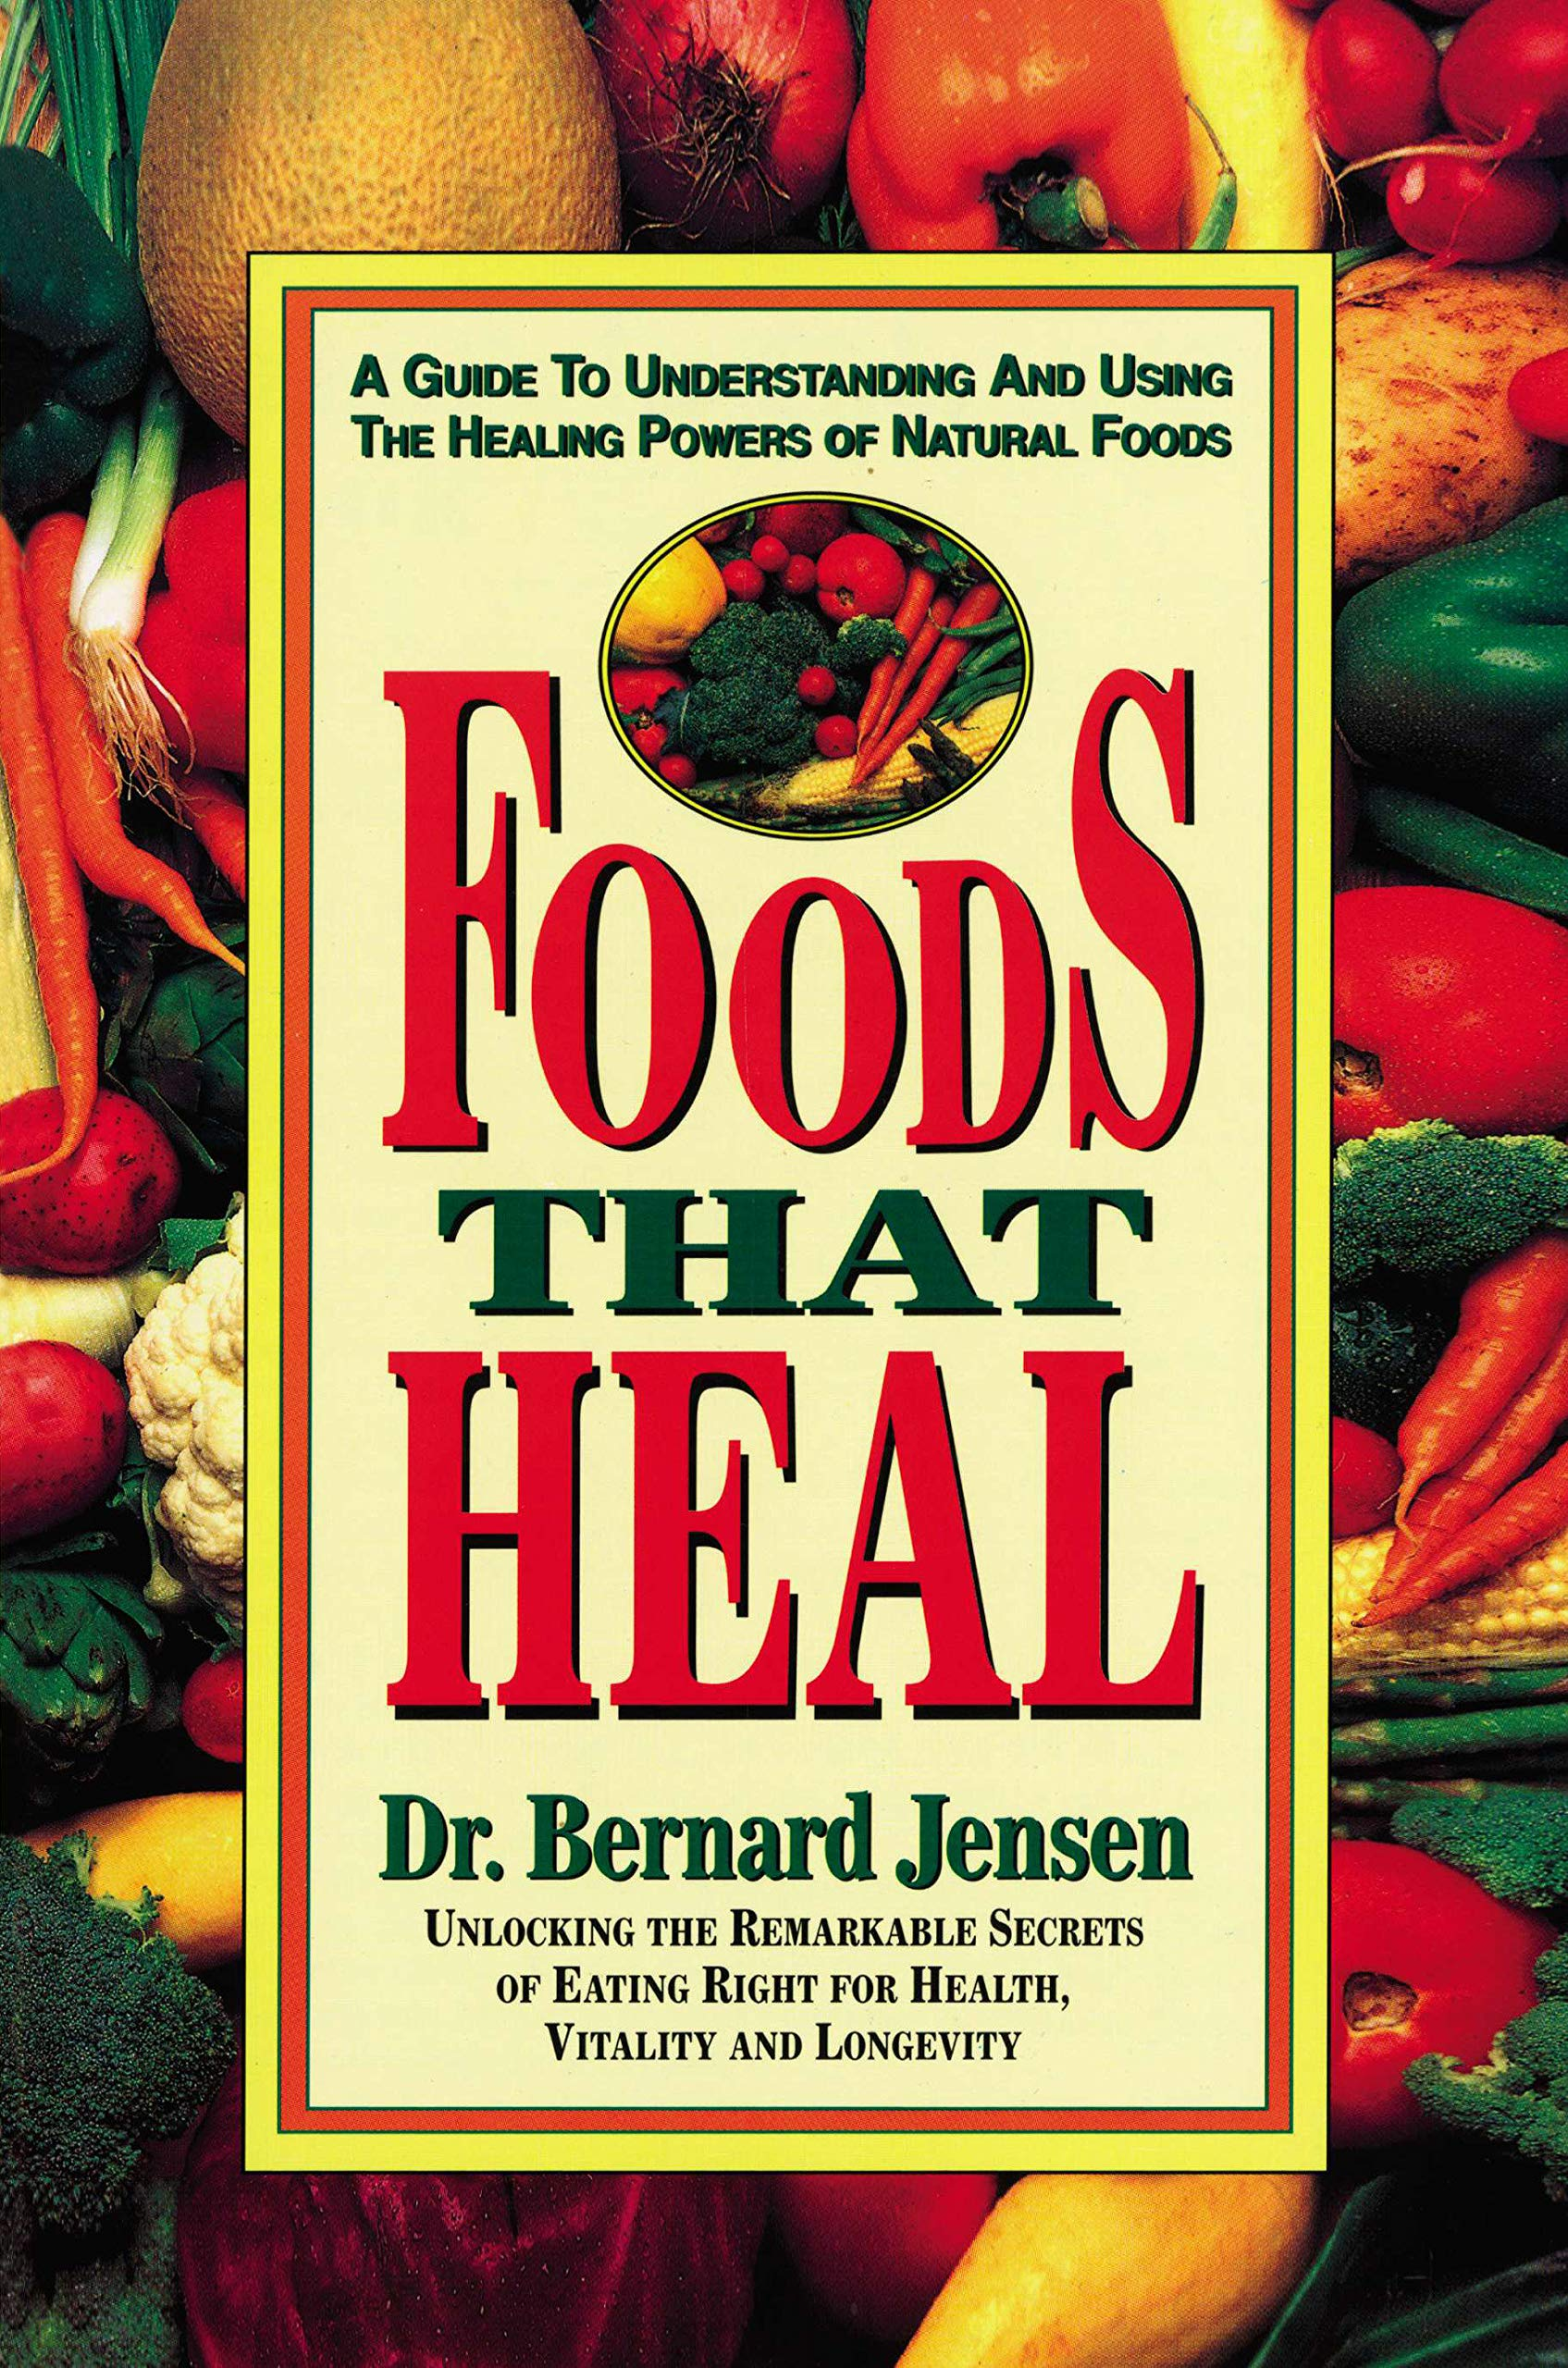 Foods That Heal: A Guide to Understanding and Using the Healing Powers of Natural Foods: Unlocking the Remarkable Secrets of Eating Right for Health Vitality and Longevity